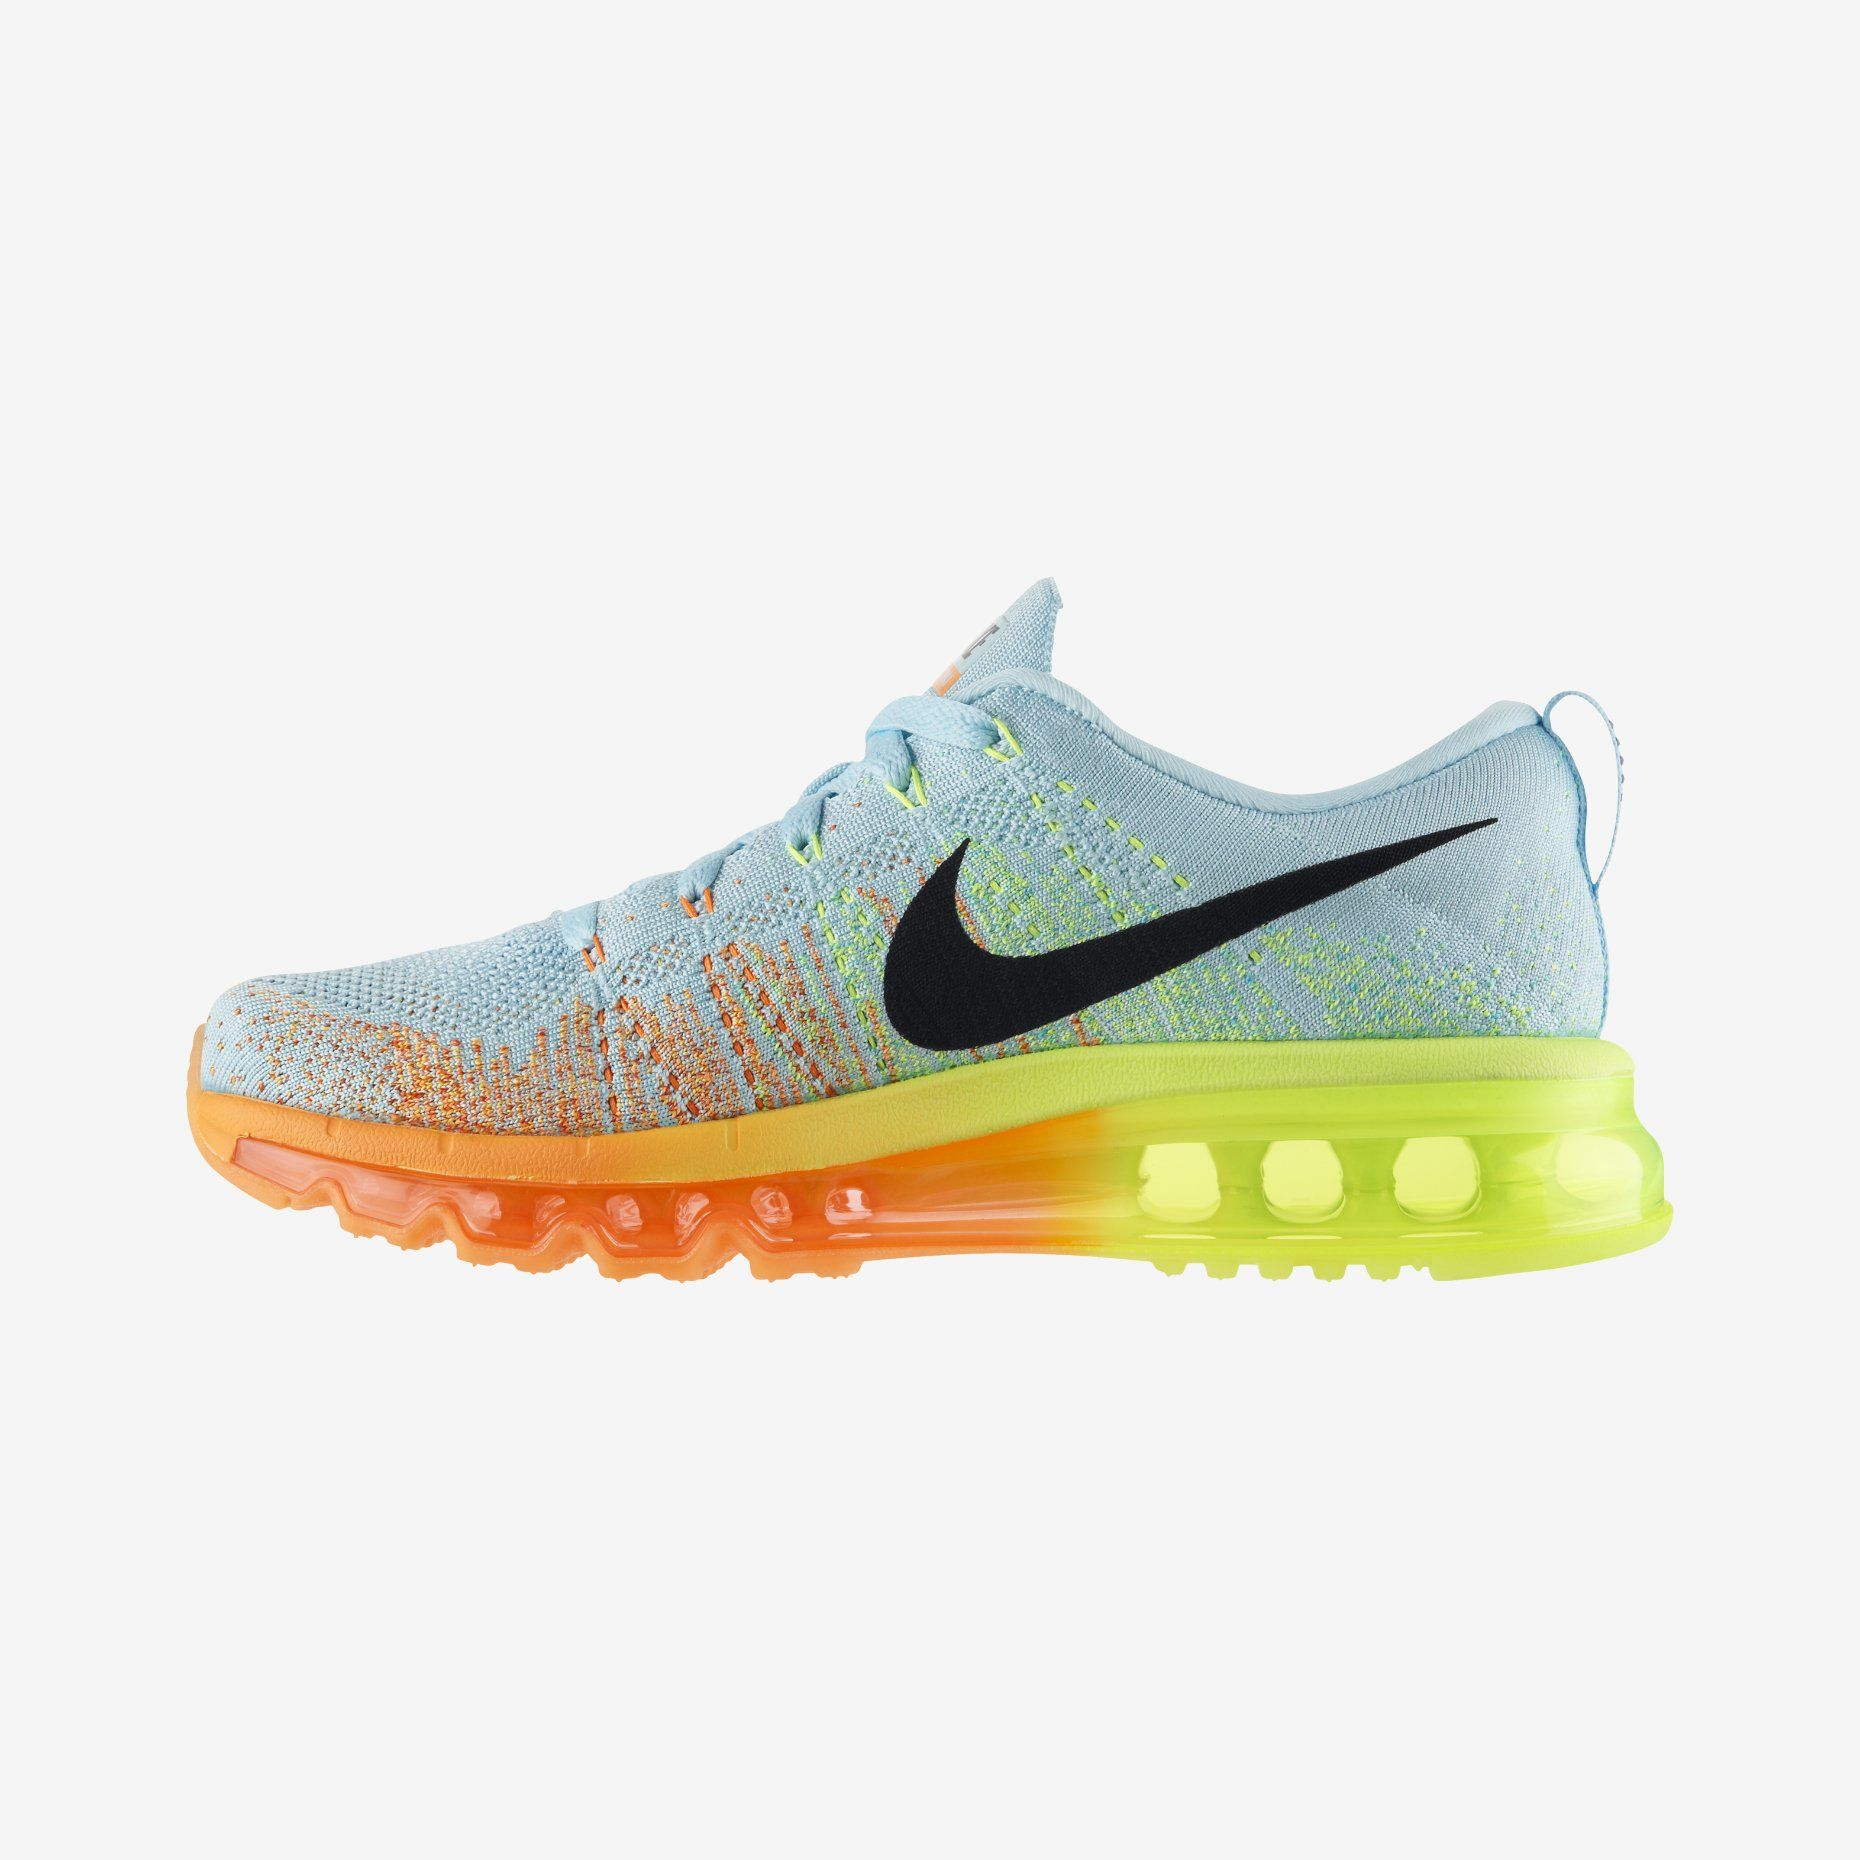 Nike Air Max Flyknit Mujeres Zapatillas i párr correr the products i Zapatillas ee2063